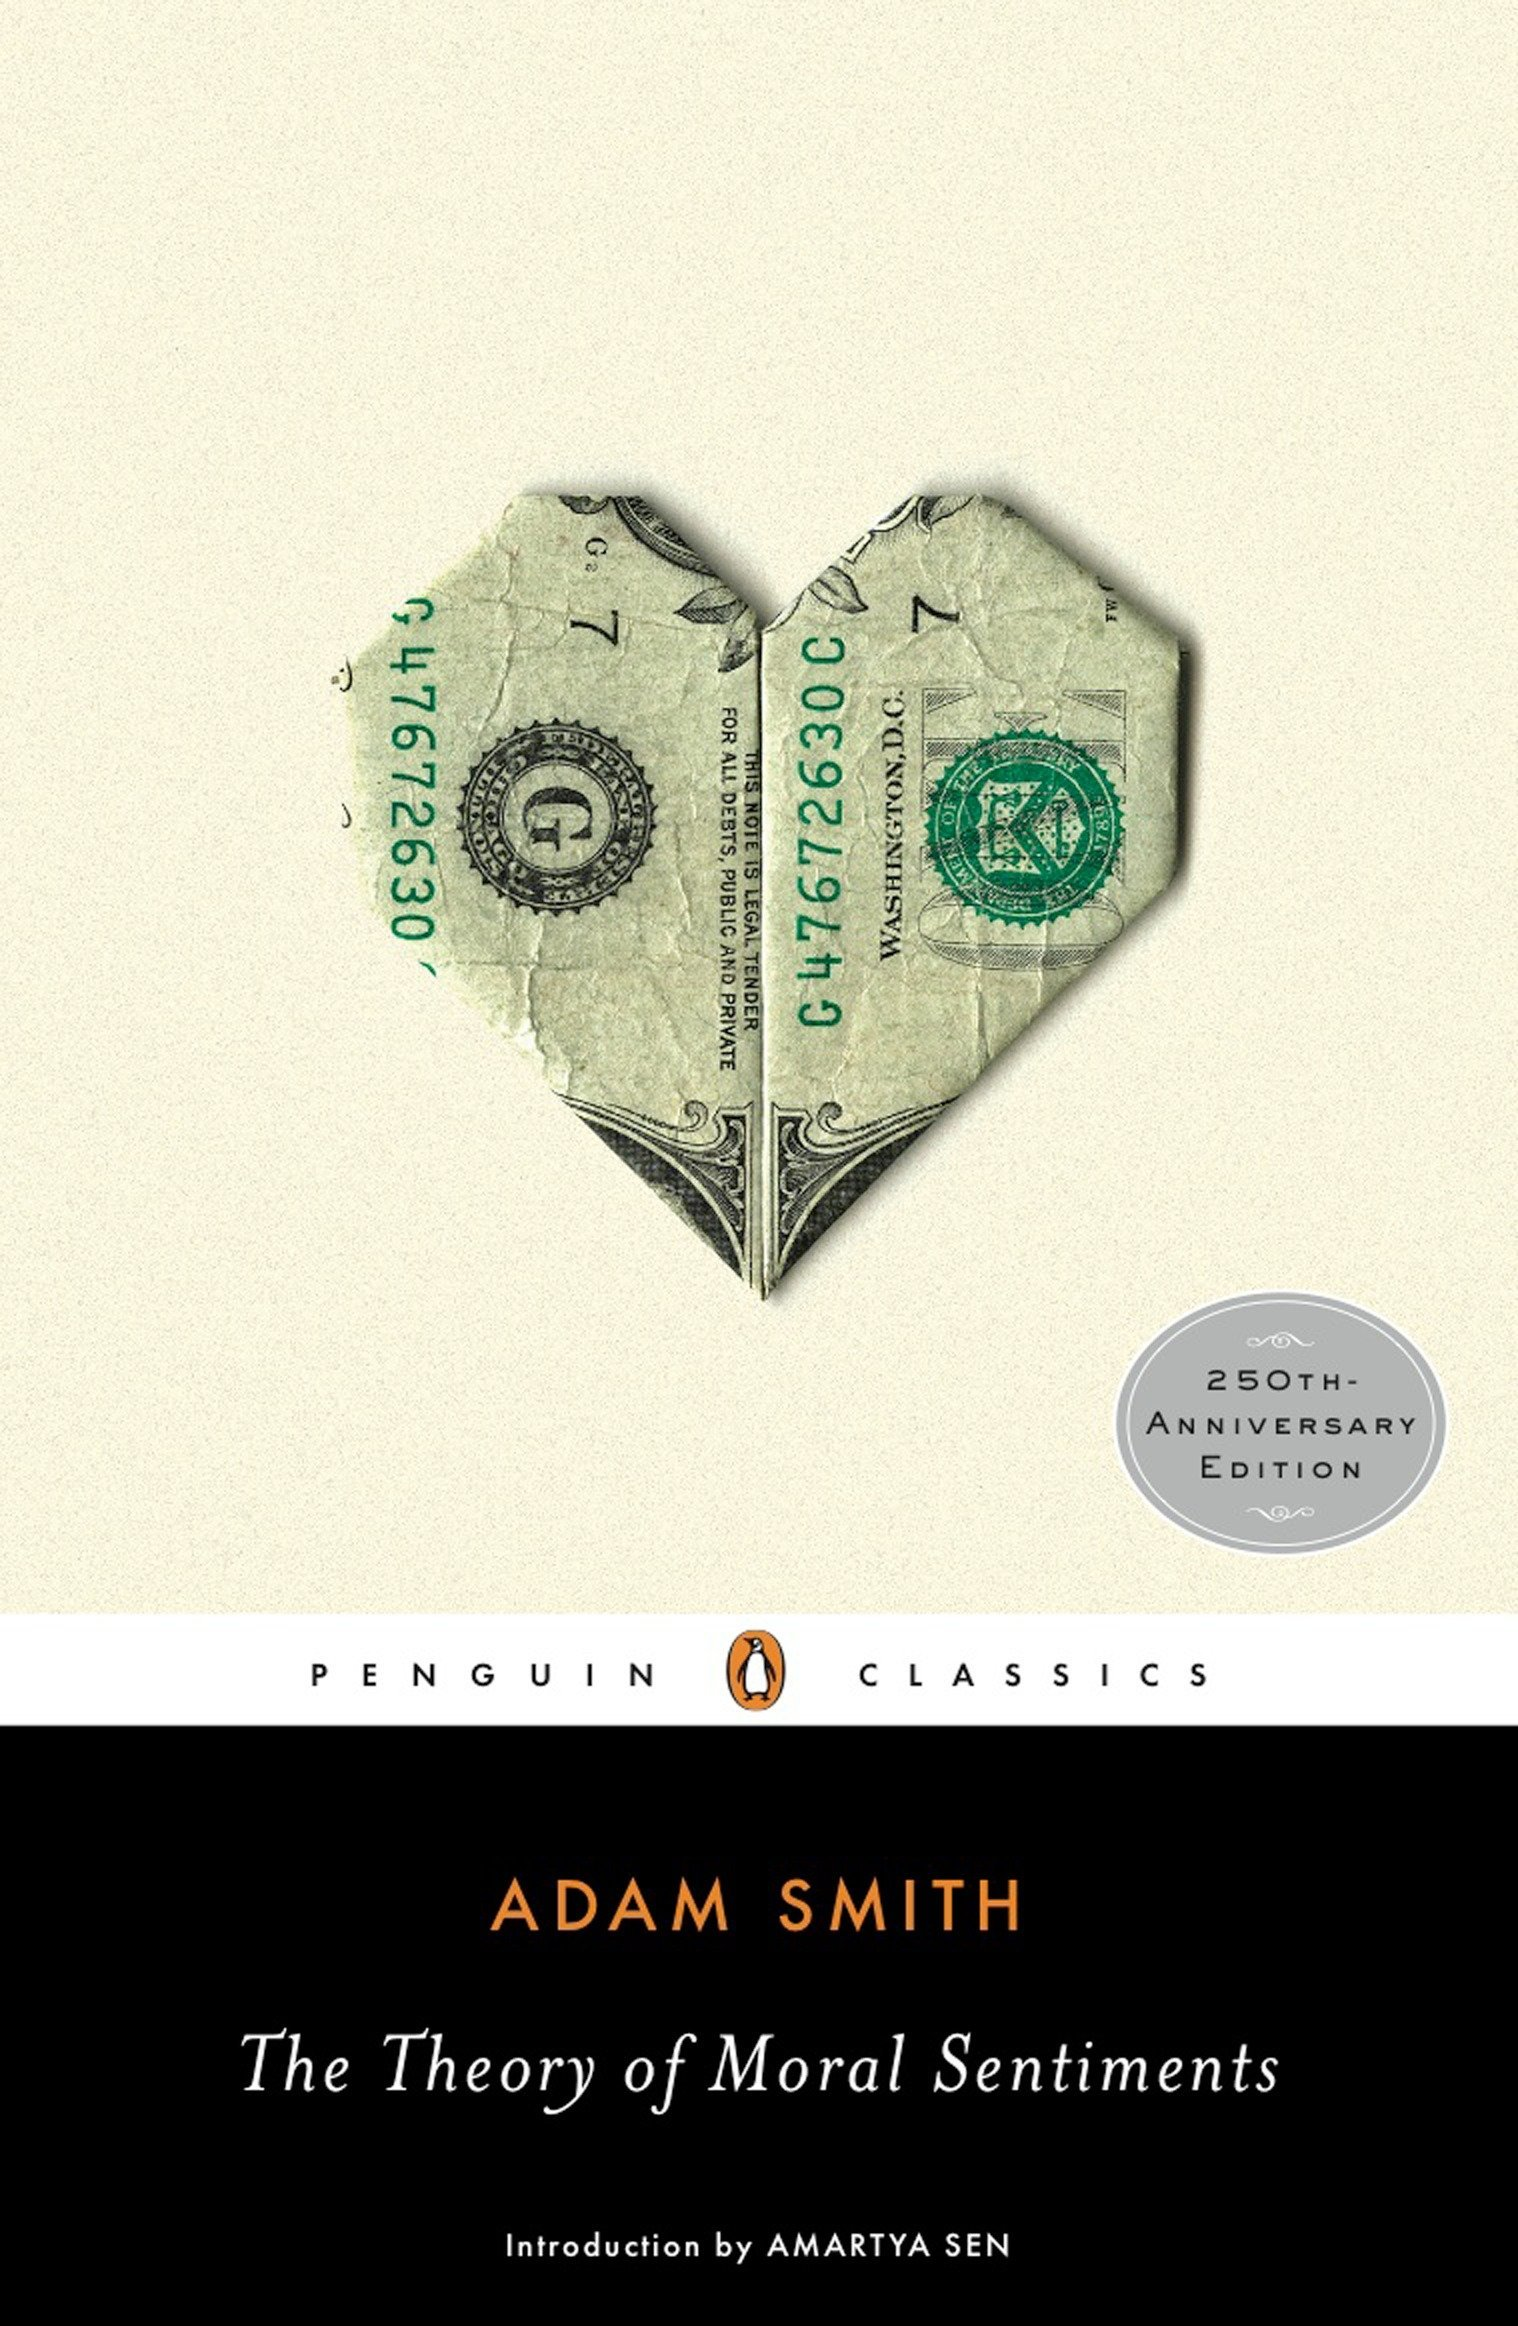 The Theory of Moral Sentiments (Penguin Classics) Paperback – January 26, 2010 Adam Smith Ryan Patrick Hanley Amartya Sen 0143105922